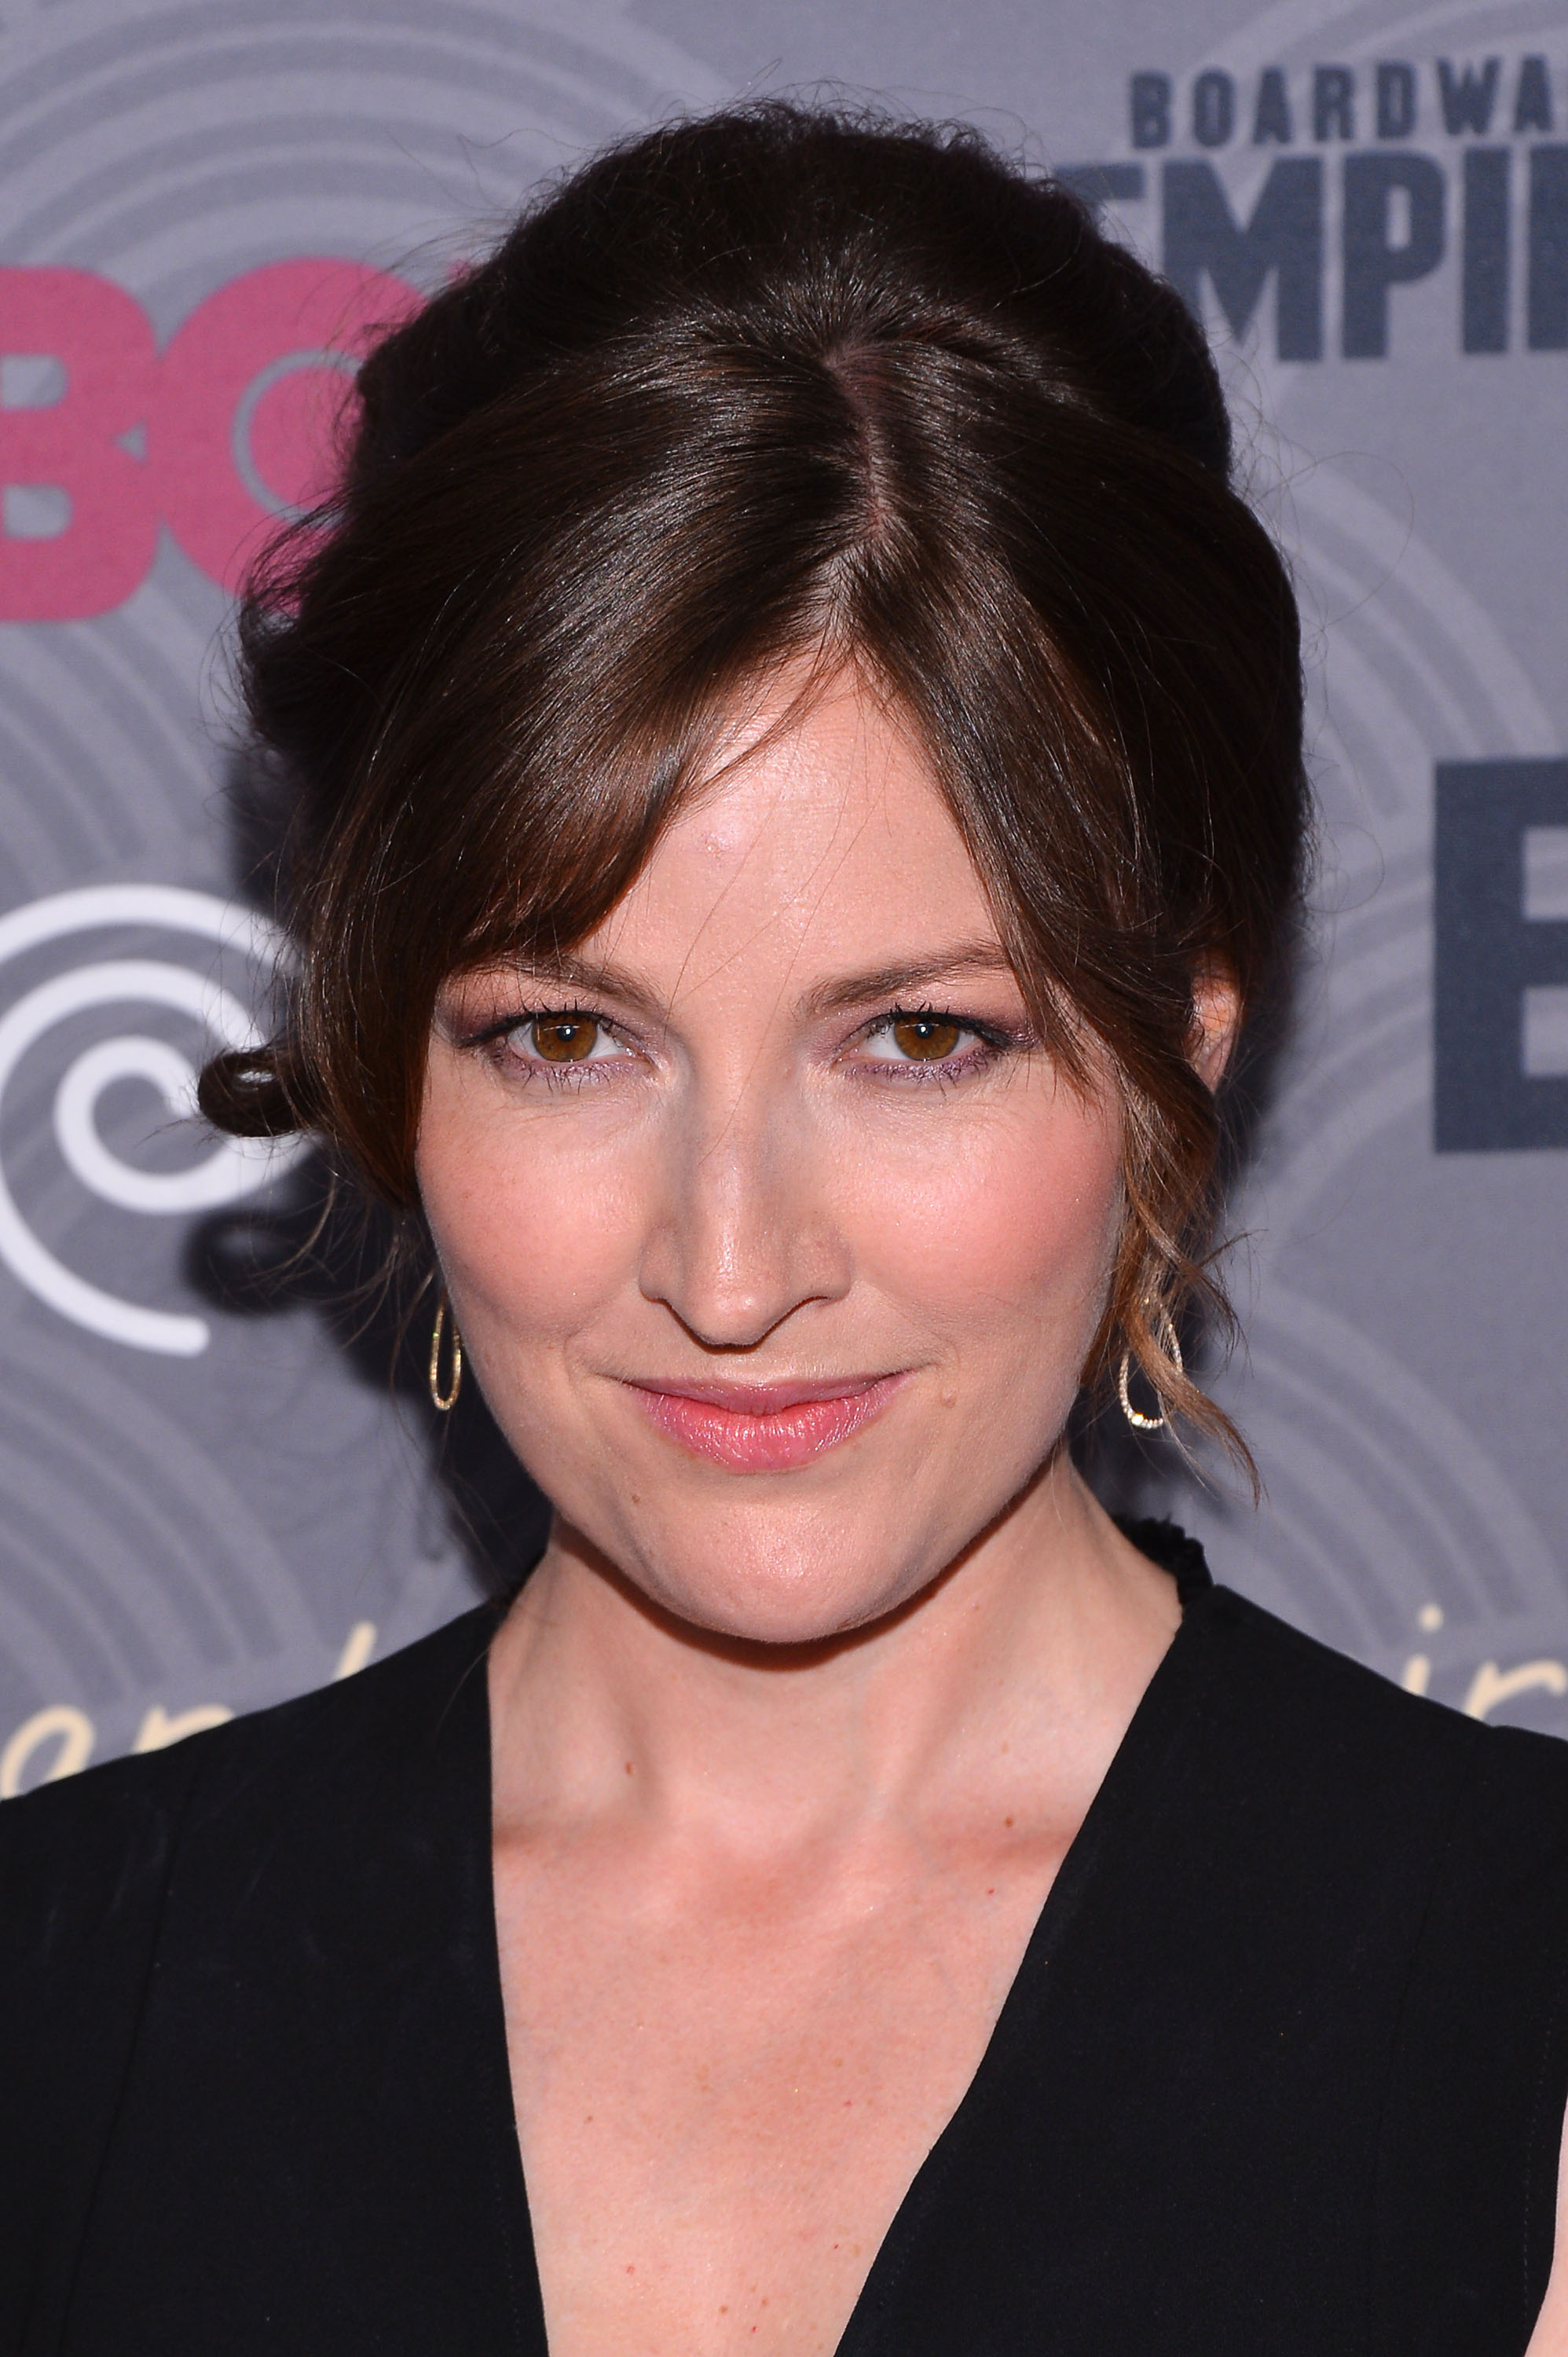 kelly macdonald twitter